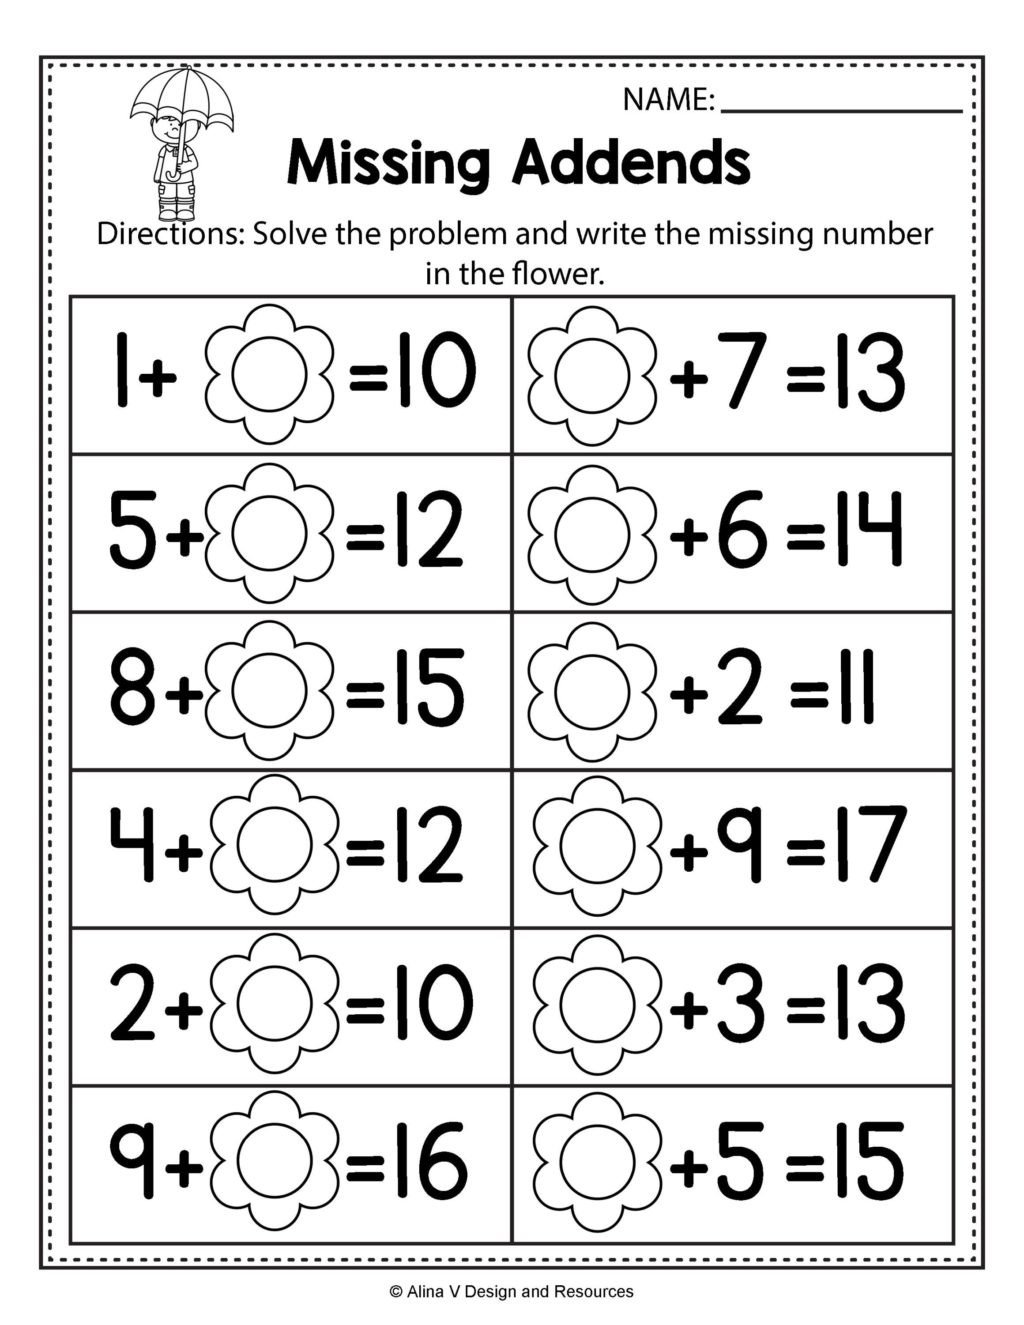 Kindergarten Number Bonds Worksheets Worksheet Worksheetee Spring Math Worksheets for